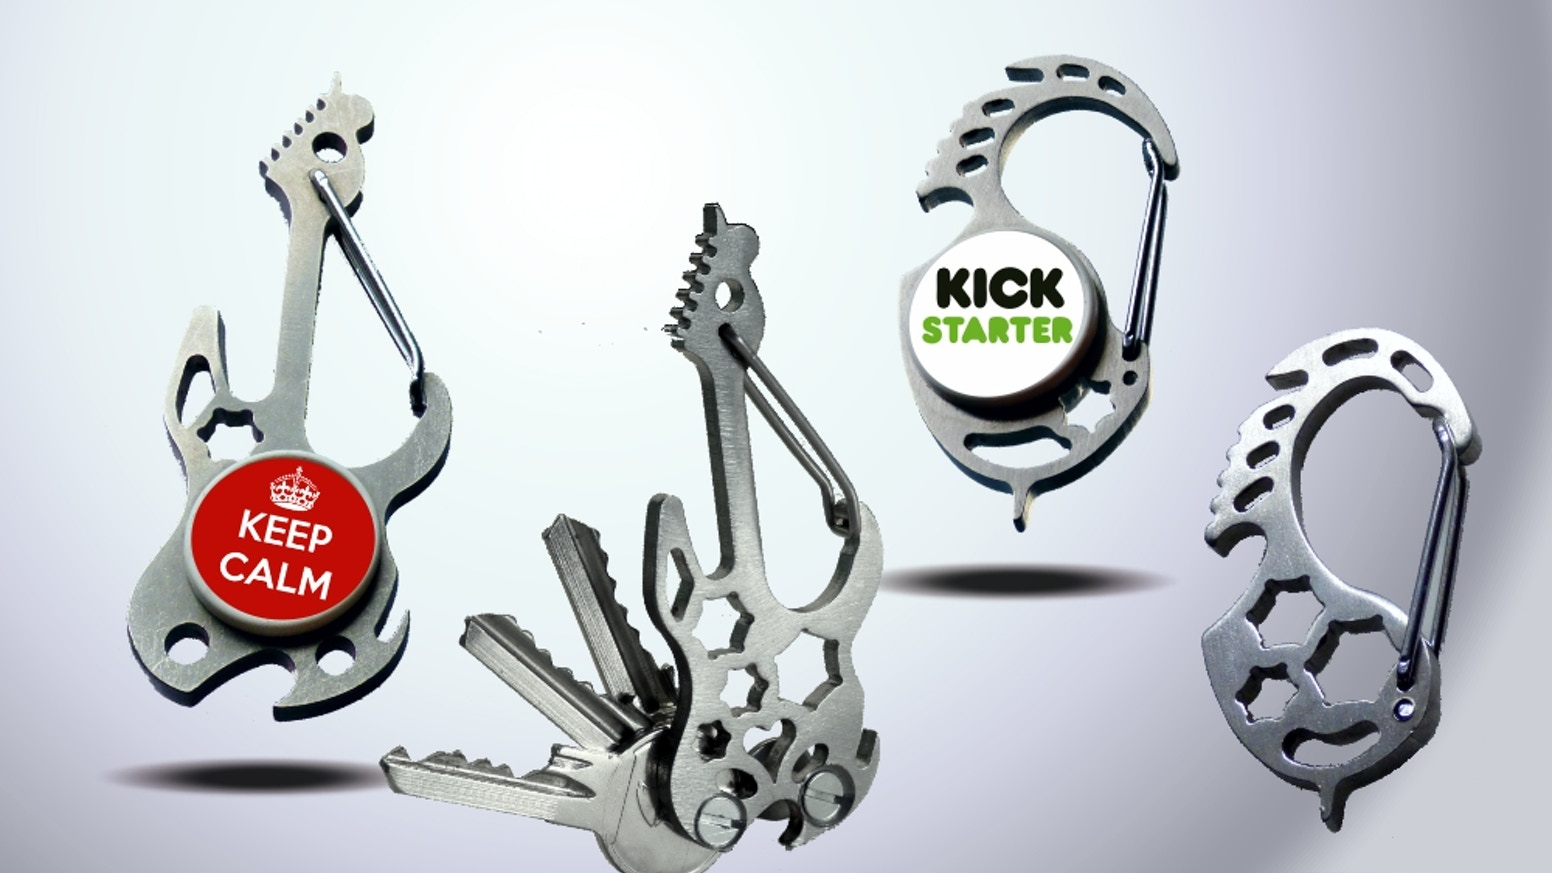 Quick & simple everyday carry. Carabiner, key organizer, bottle opener, box opener, wrench tool, NFC technology, logo and more.